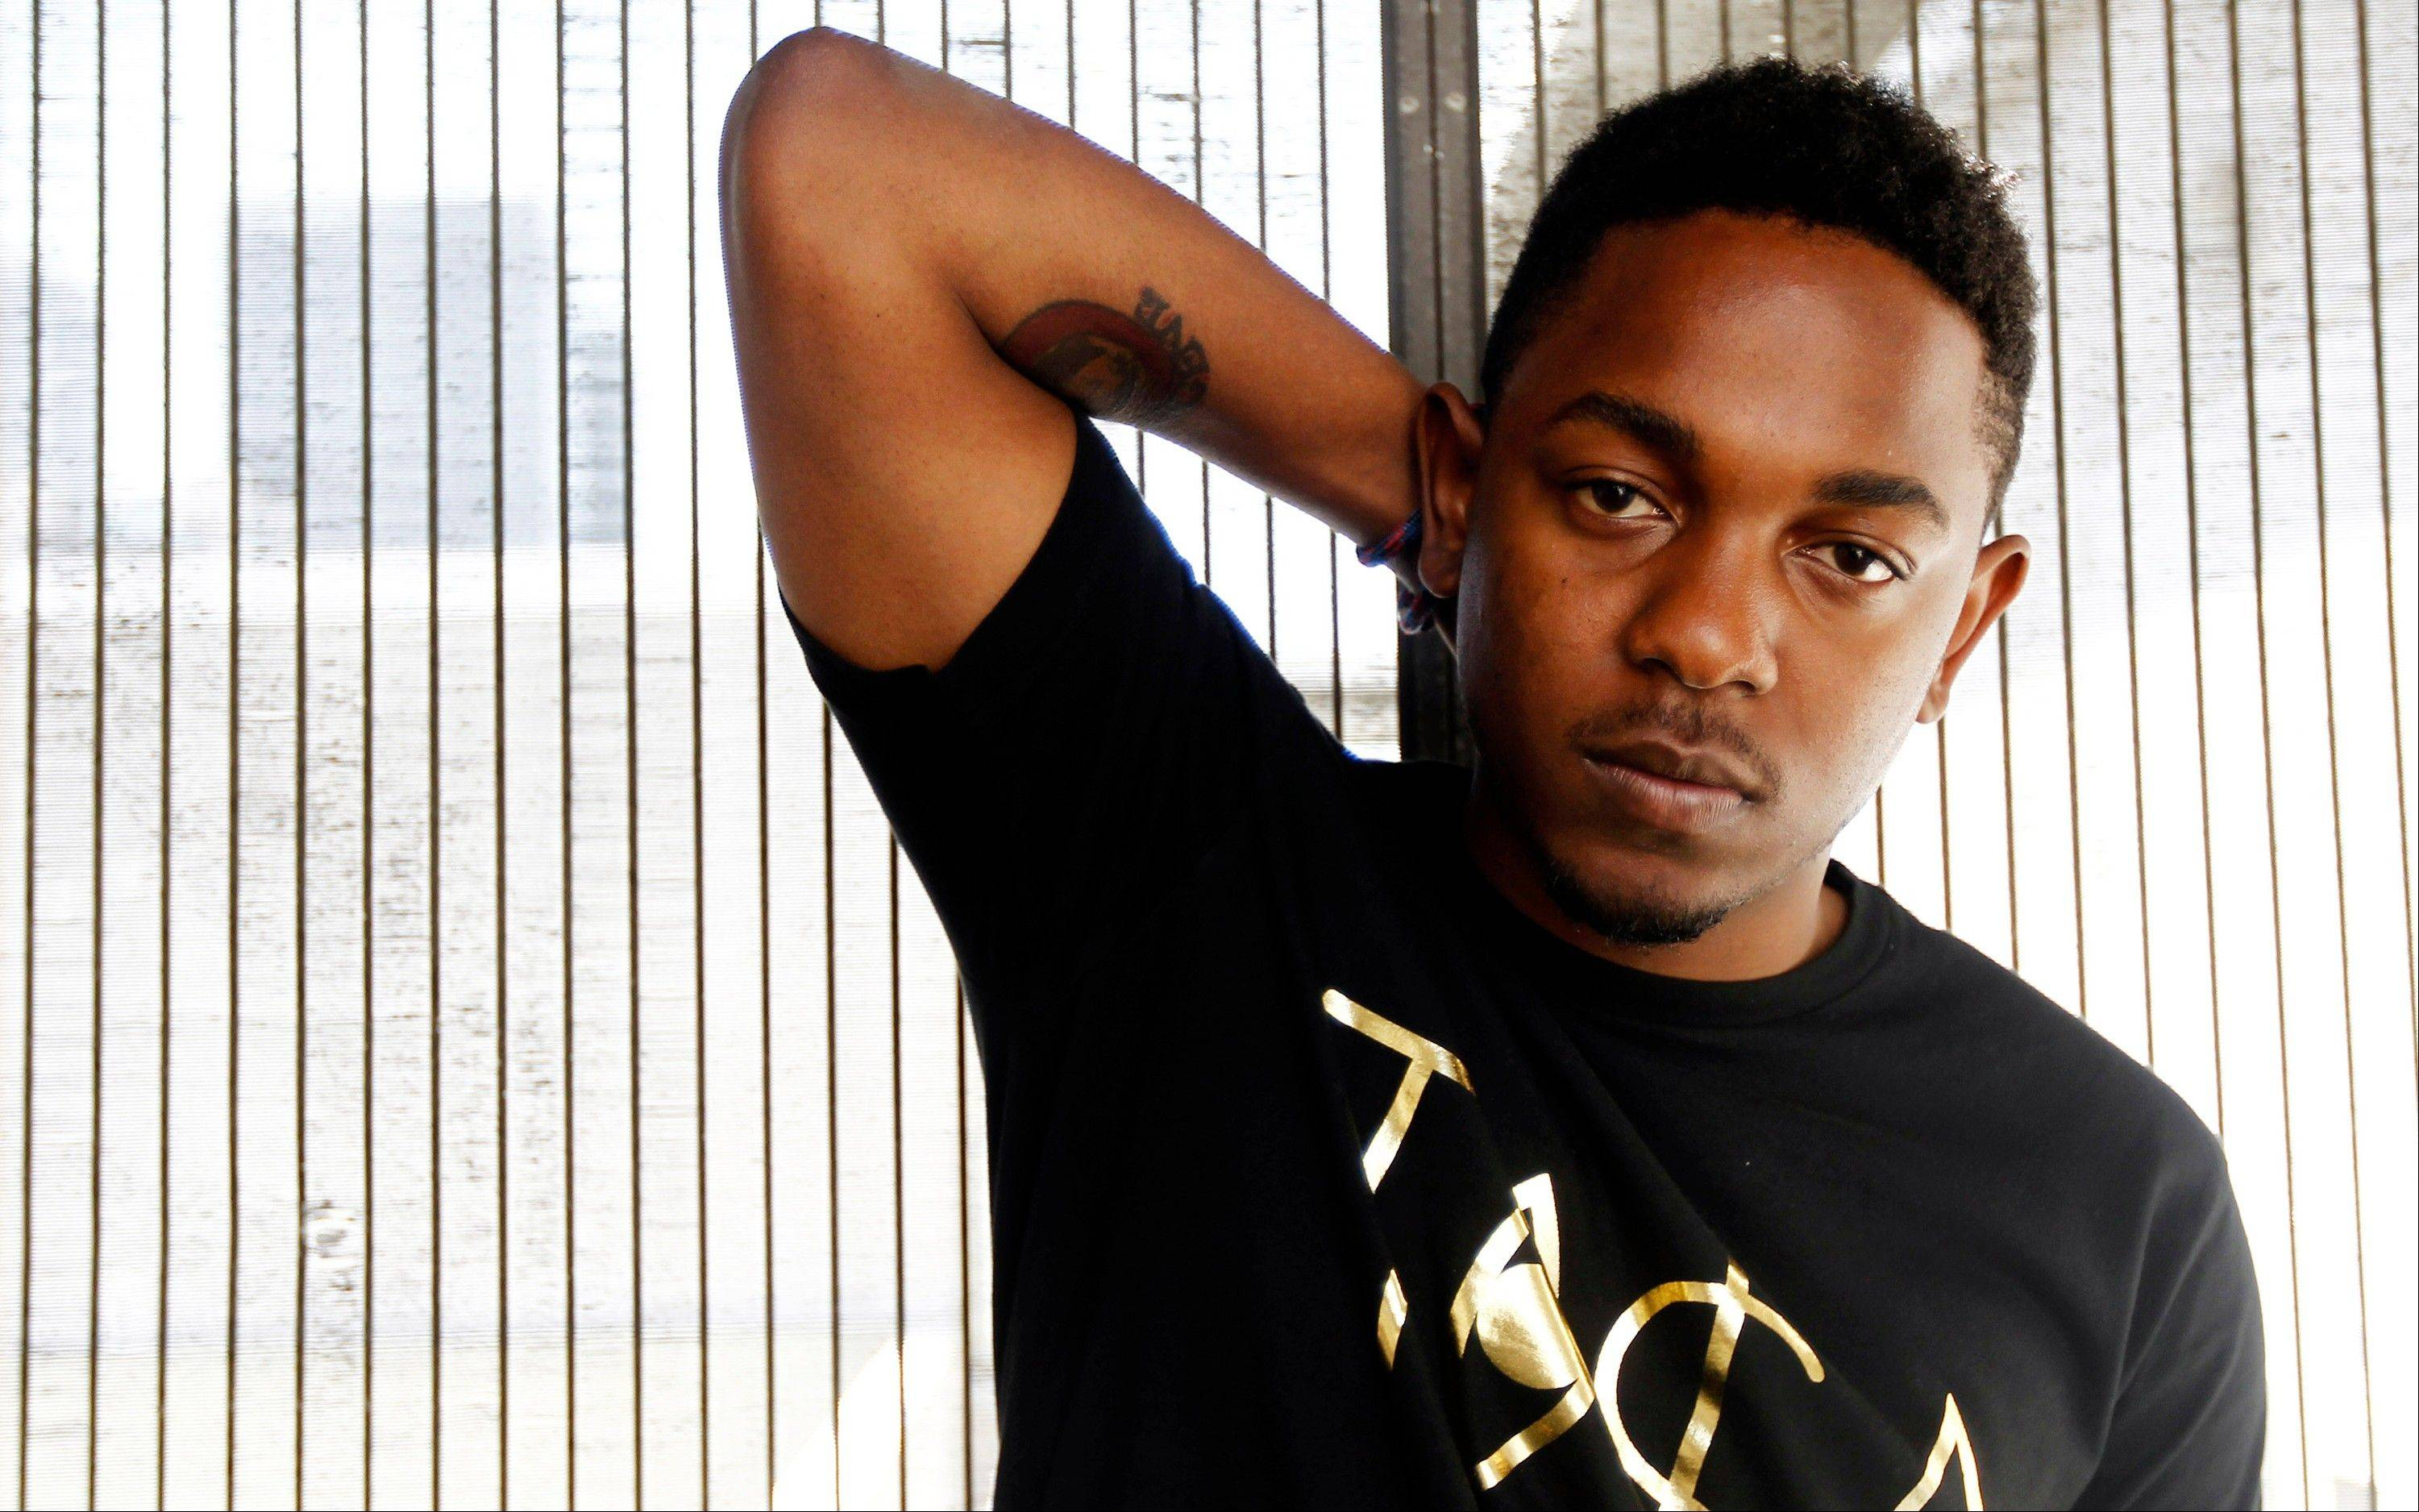 Rapper Kendrick Lamar made a splash with his major label release, debuting No. 2 on Billboard's Top 200 behind Taylor Swift, and topped the rap charts with more than 241,000 copies sold.